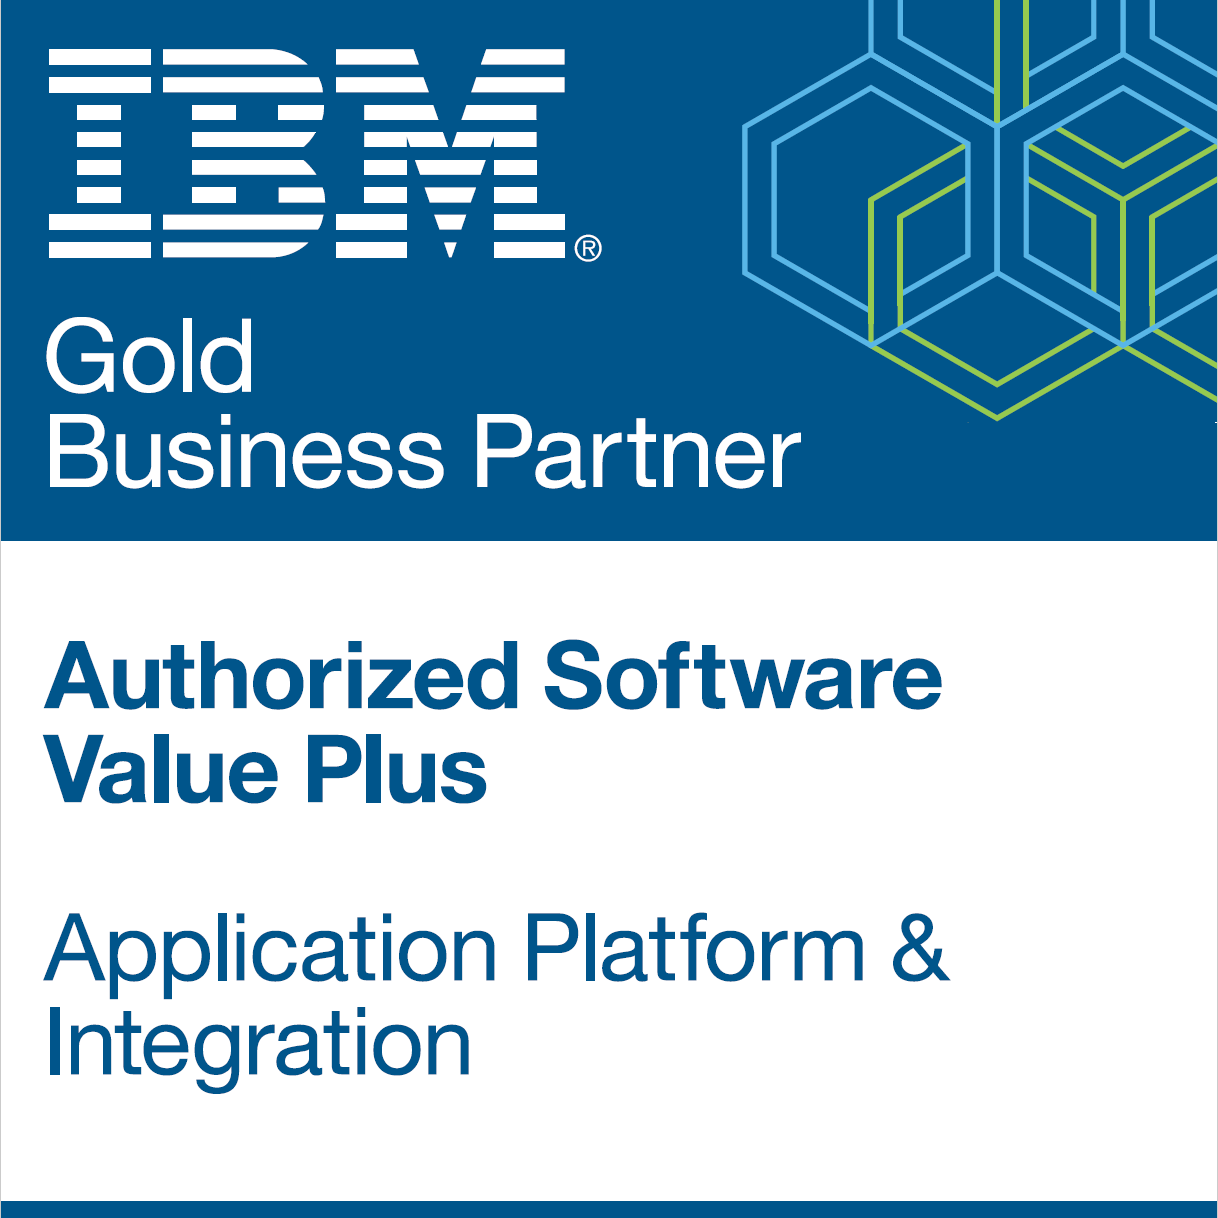 ABS is a Gold IBM Business Partner and Software Reseller...